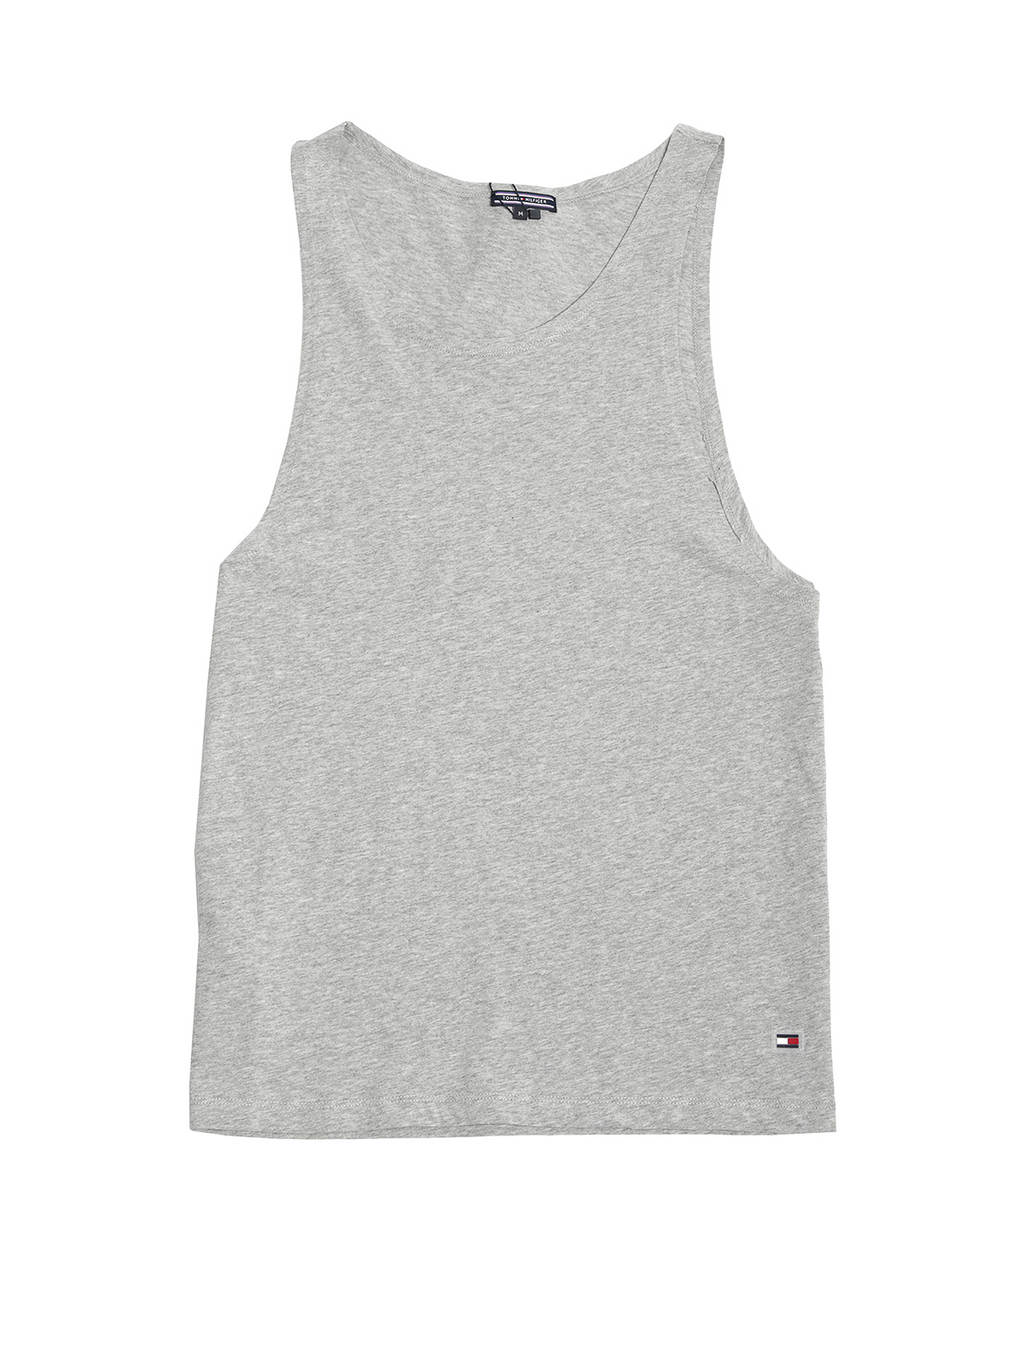 Tommy Hilfiger TANK TOP Grey